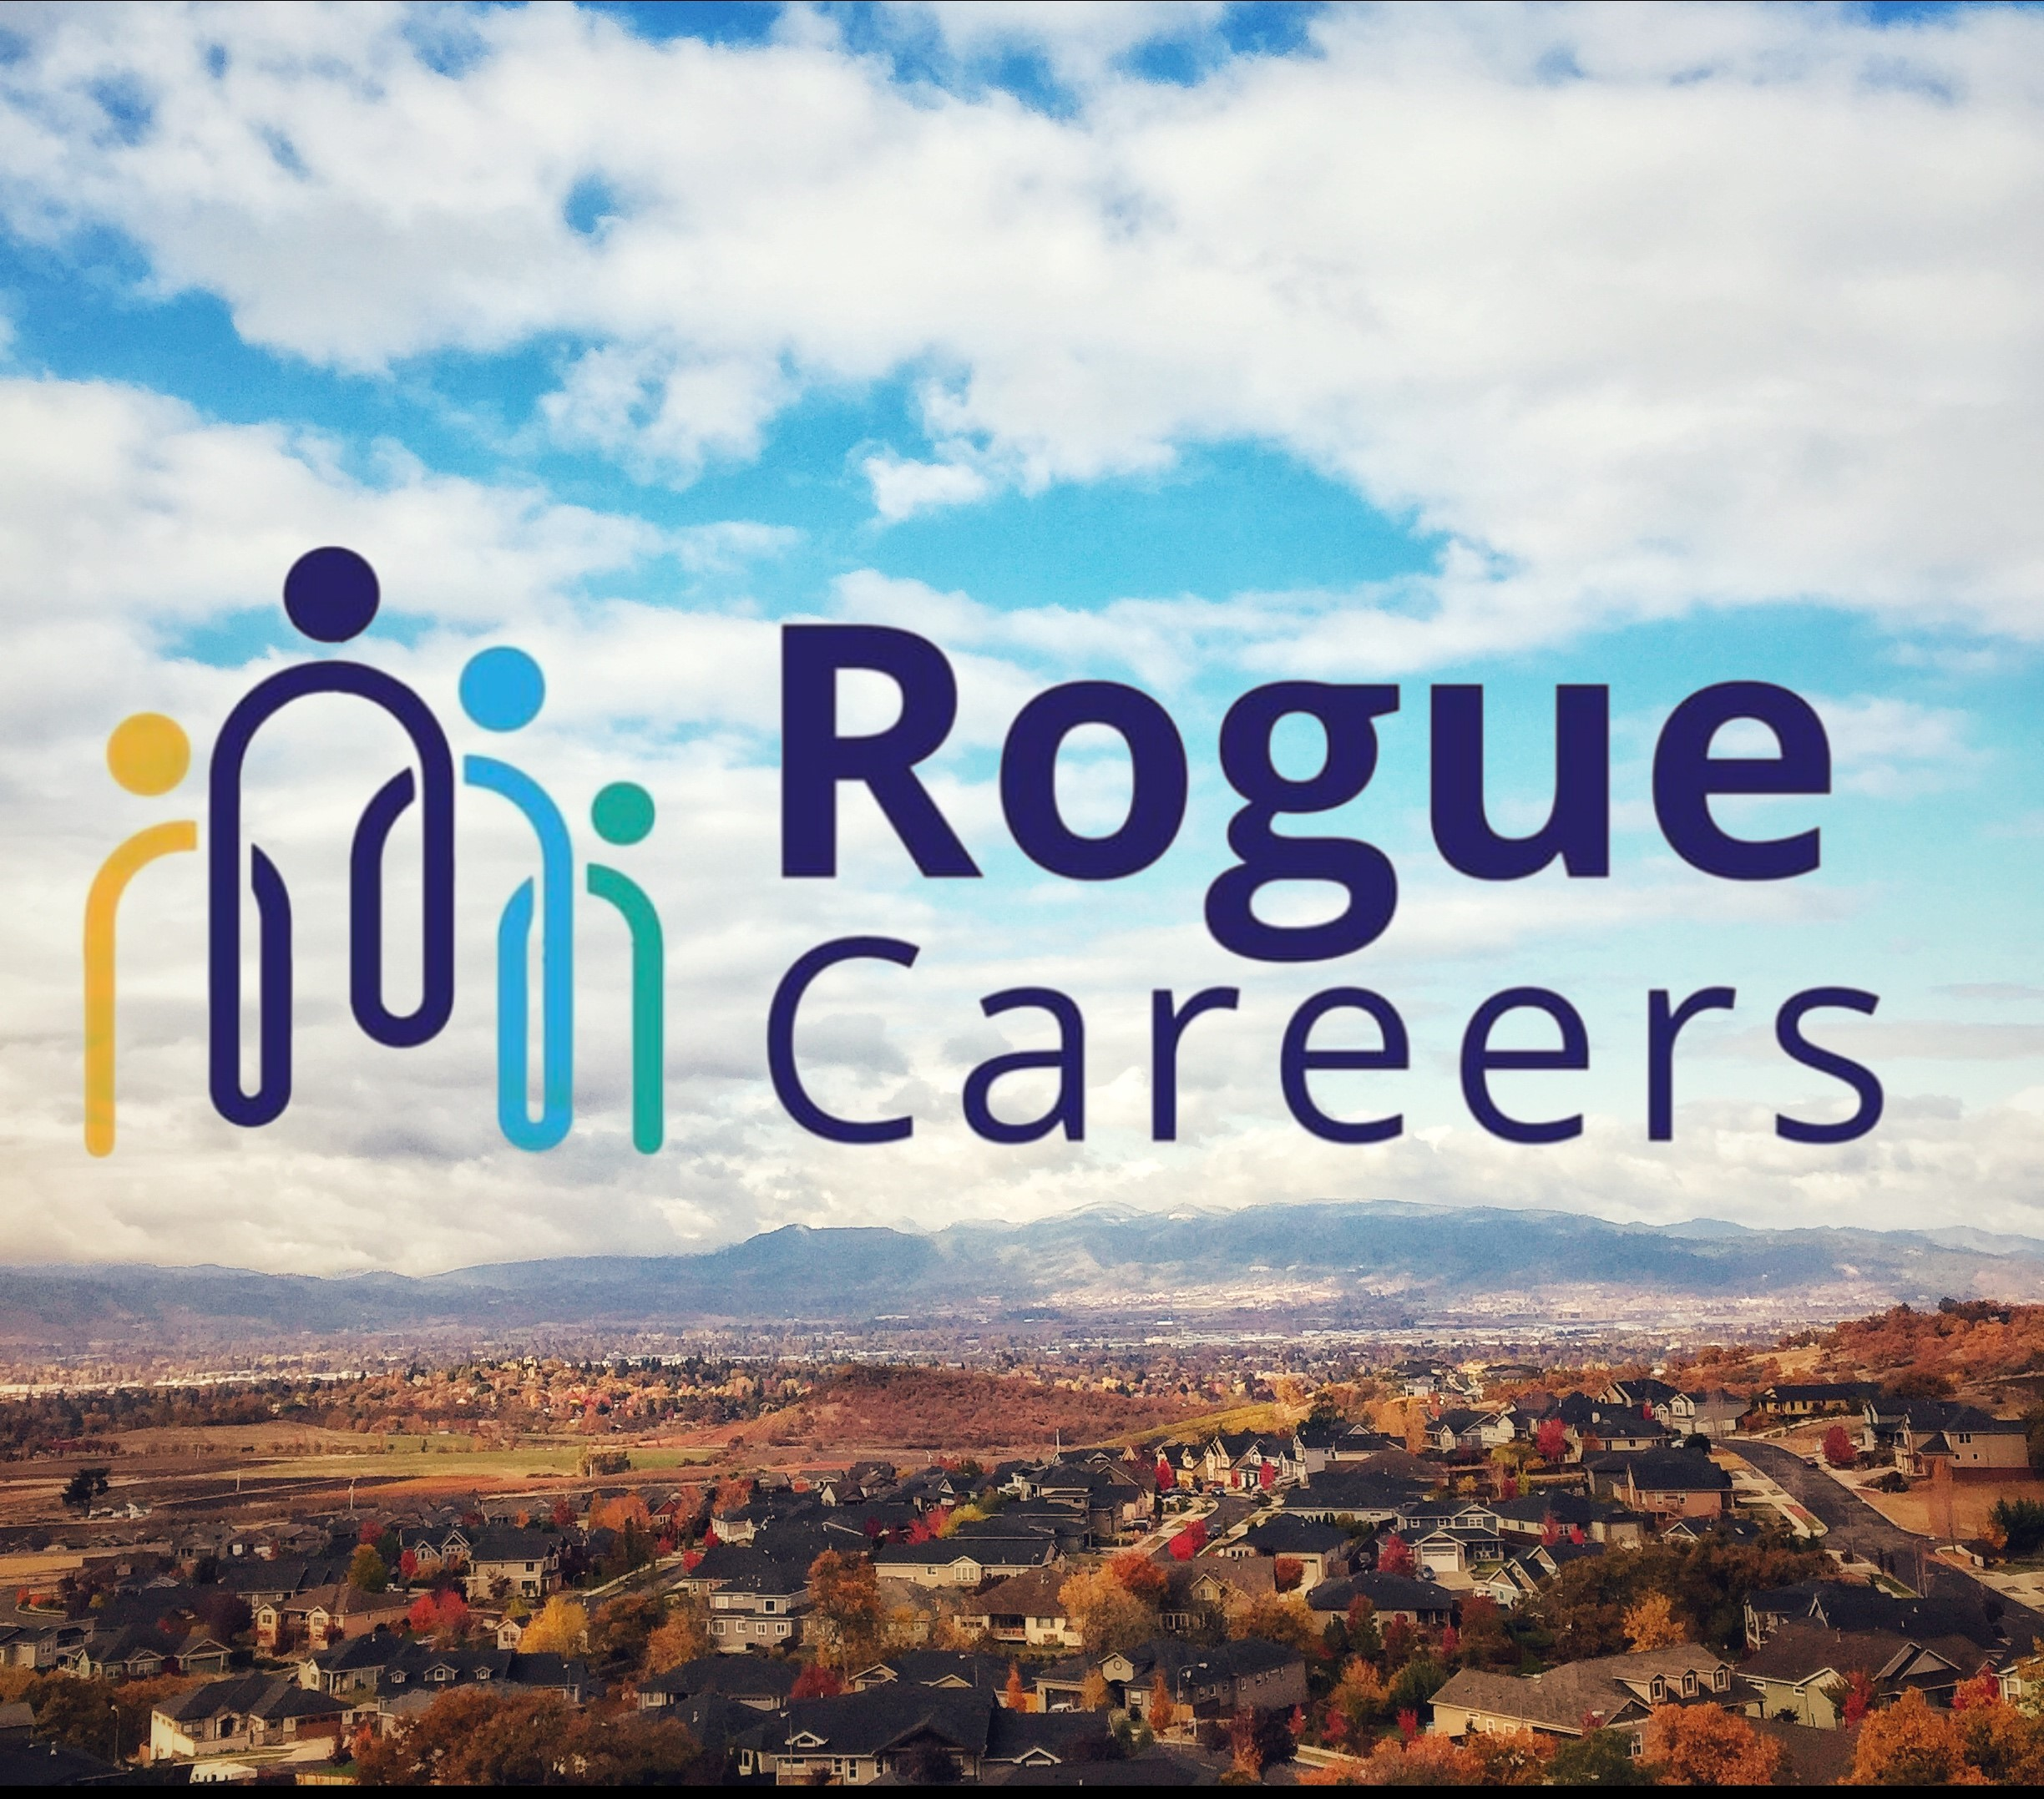 RogueCareers Highlighted on Local TV Channels